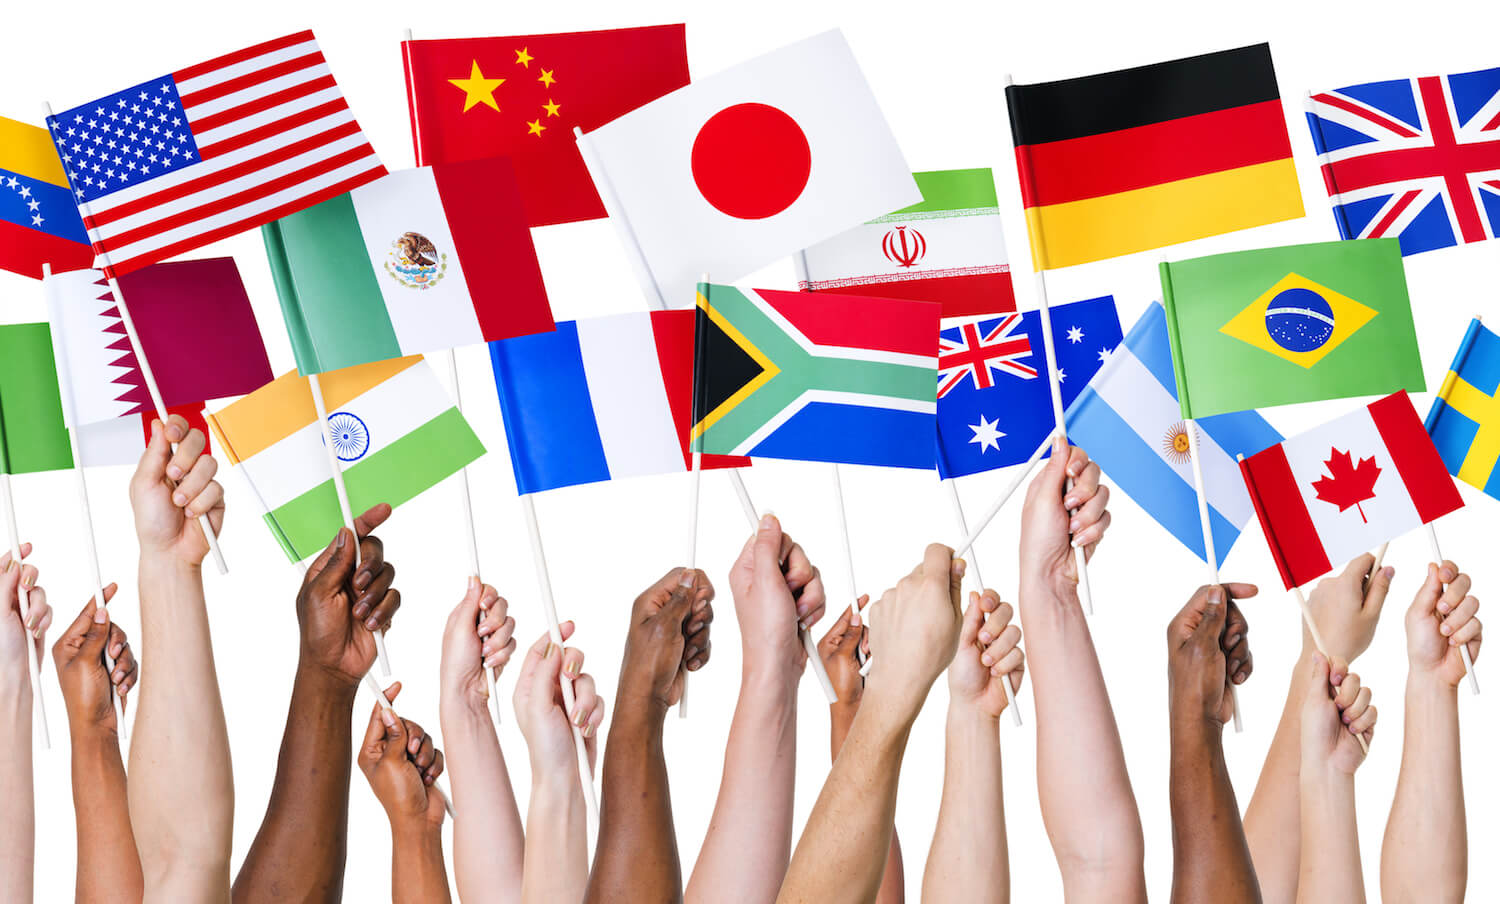 hands of various races hold up flags of different countries